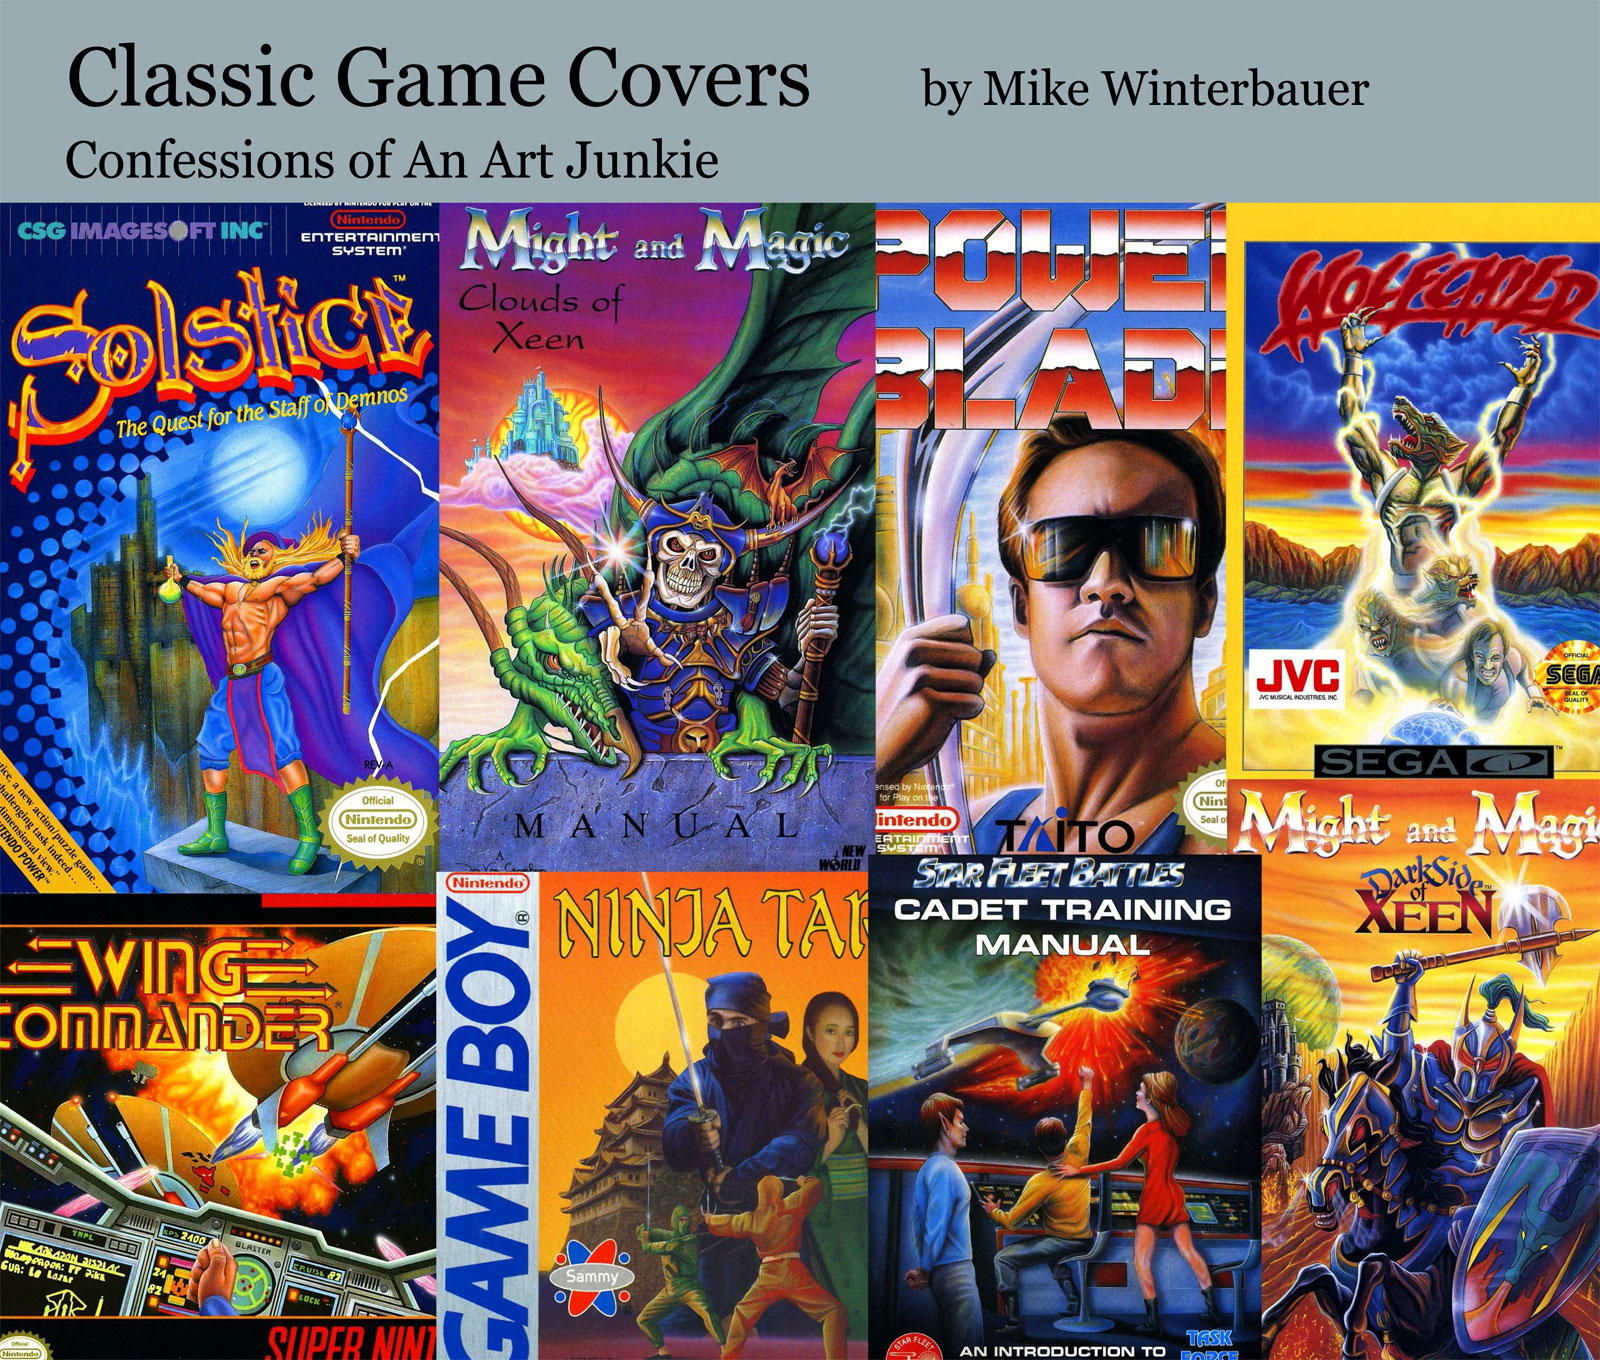 Classic Book Covers Art : Winterbauer s upcoming video game boxart book has